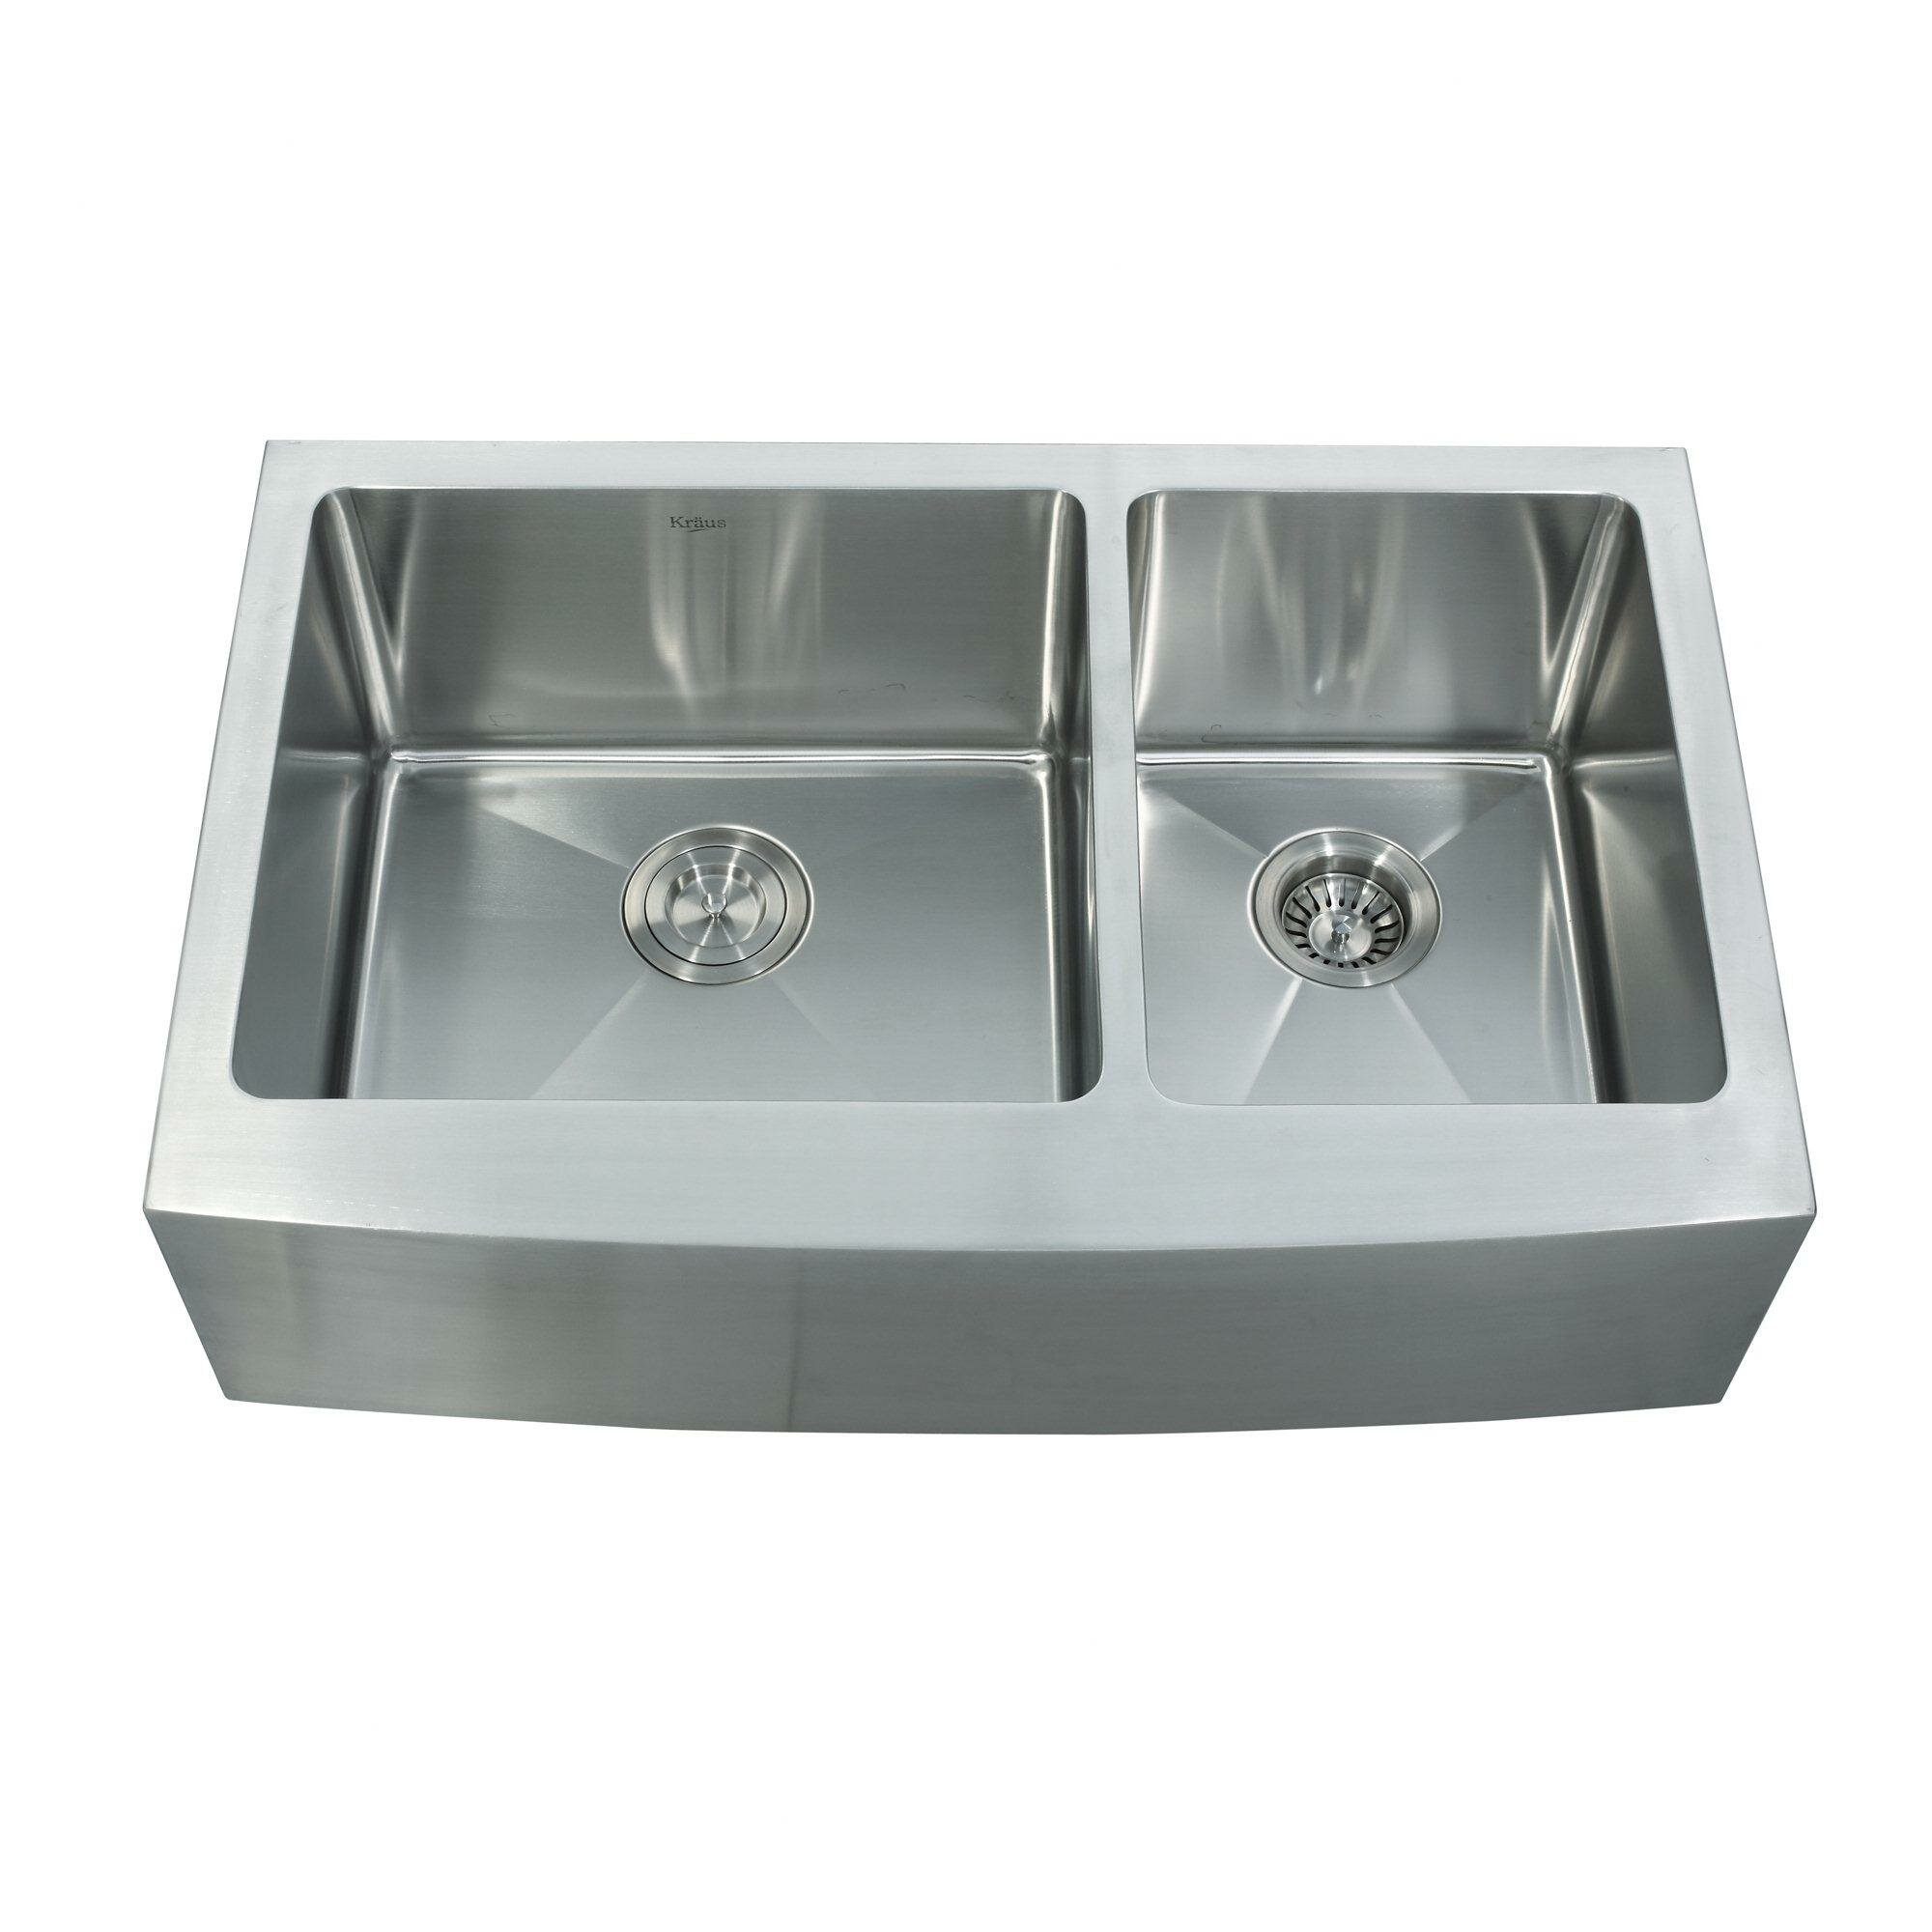 "Kraus 32 9"" x 20 75"" Farmhouse Kitchen Sink with Faucet and Soap Di"